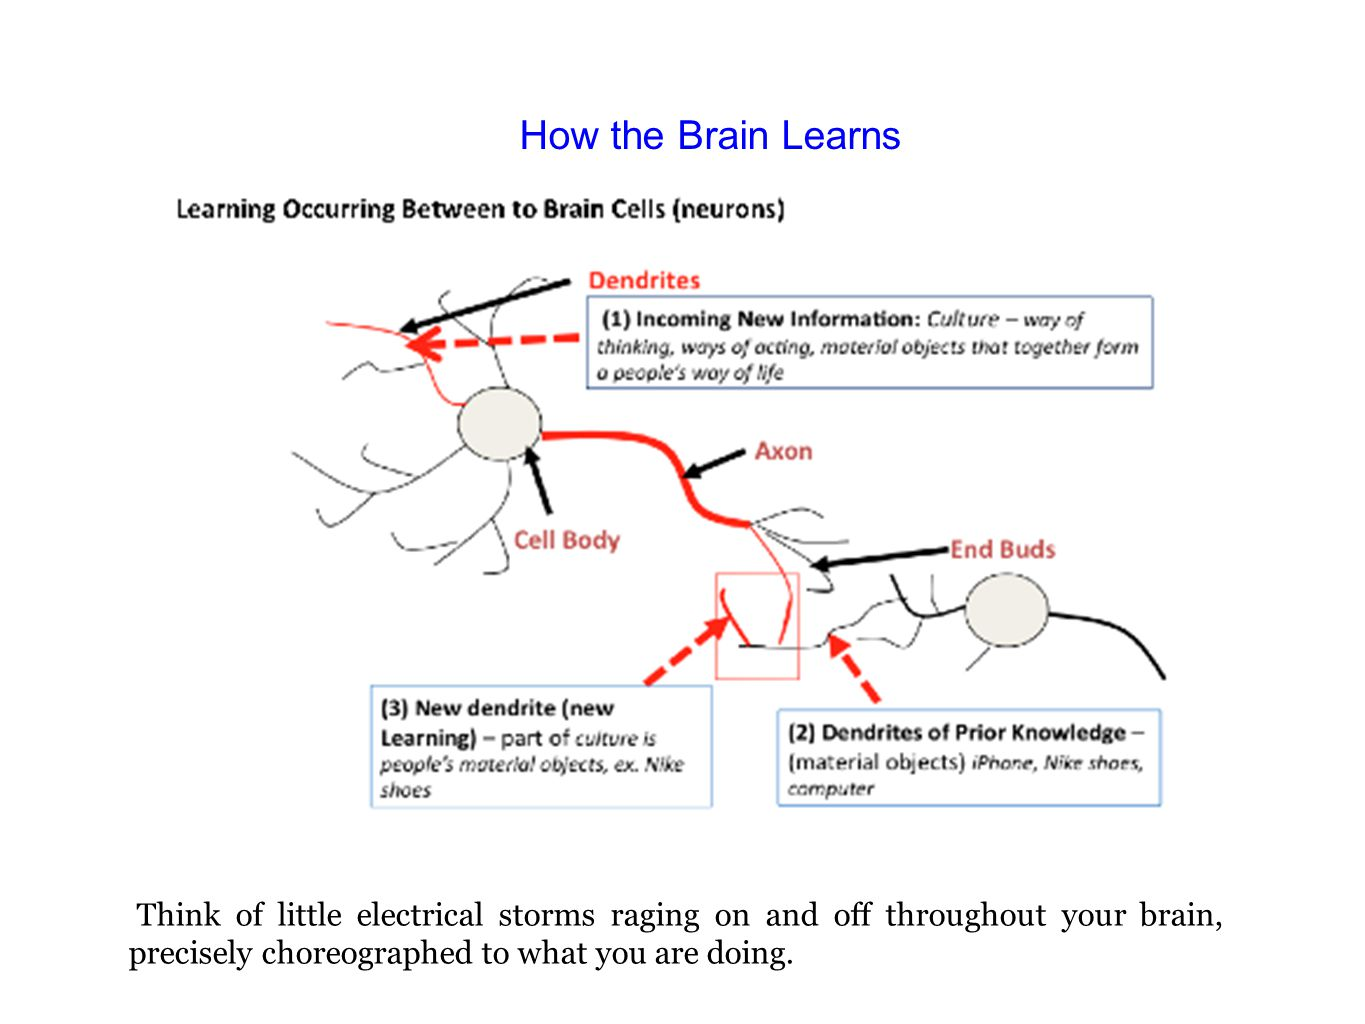 How the Brain Learns Think of little electrical storms raging on and off throughout your brain, precisely choreographed to what you are doing.